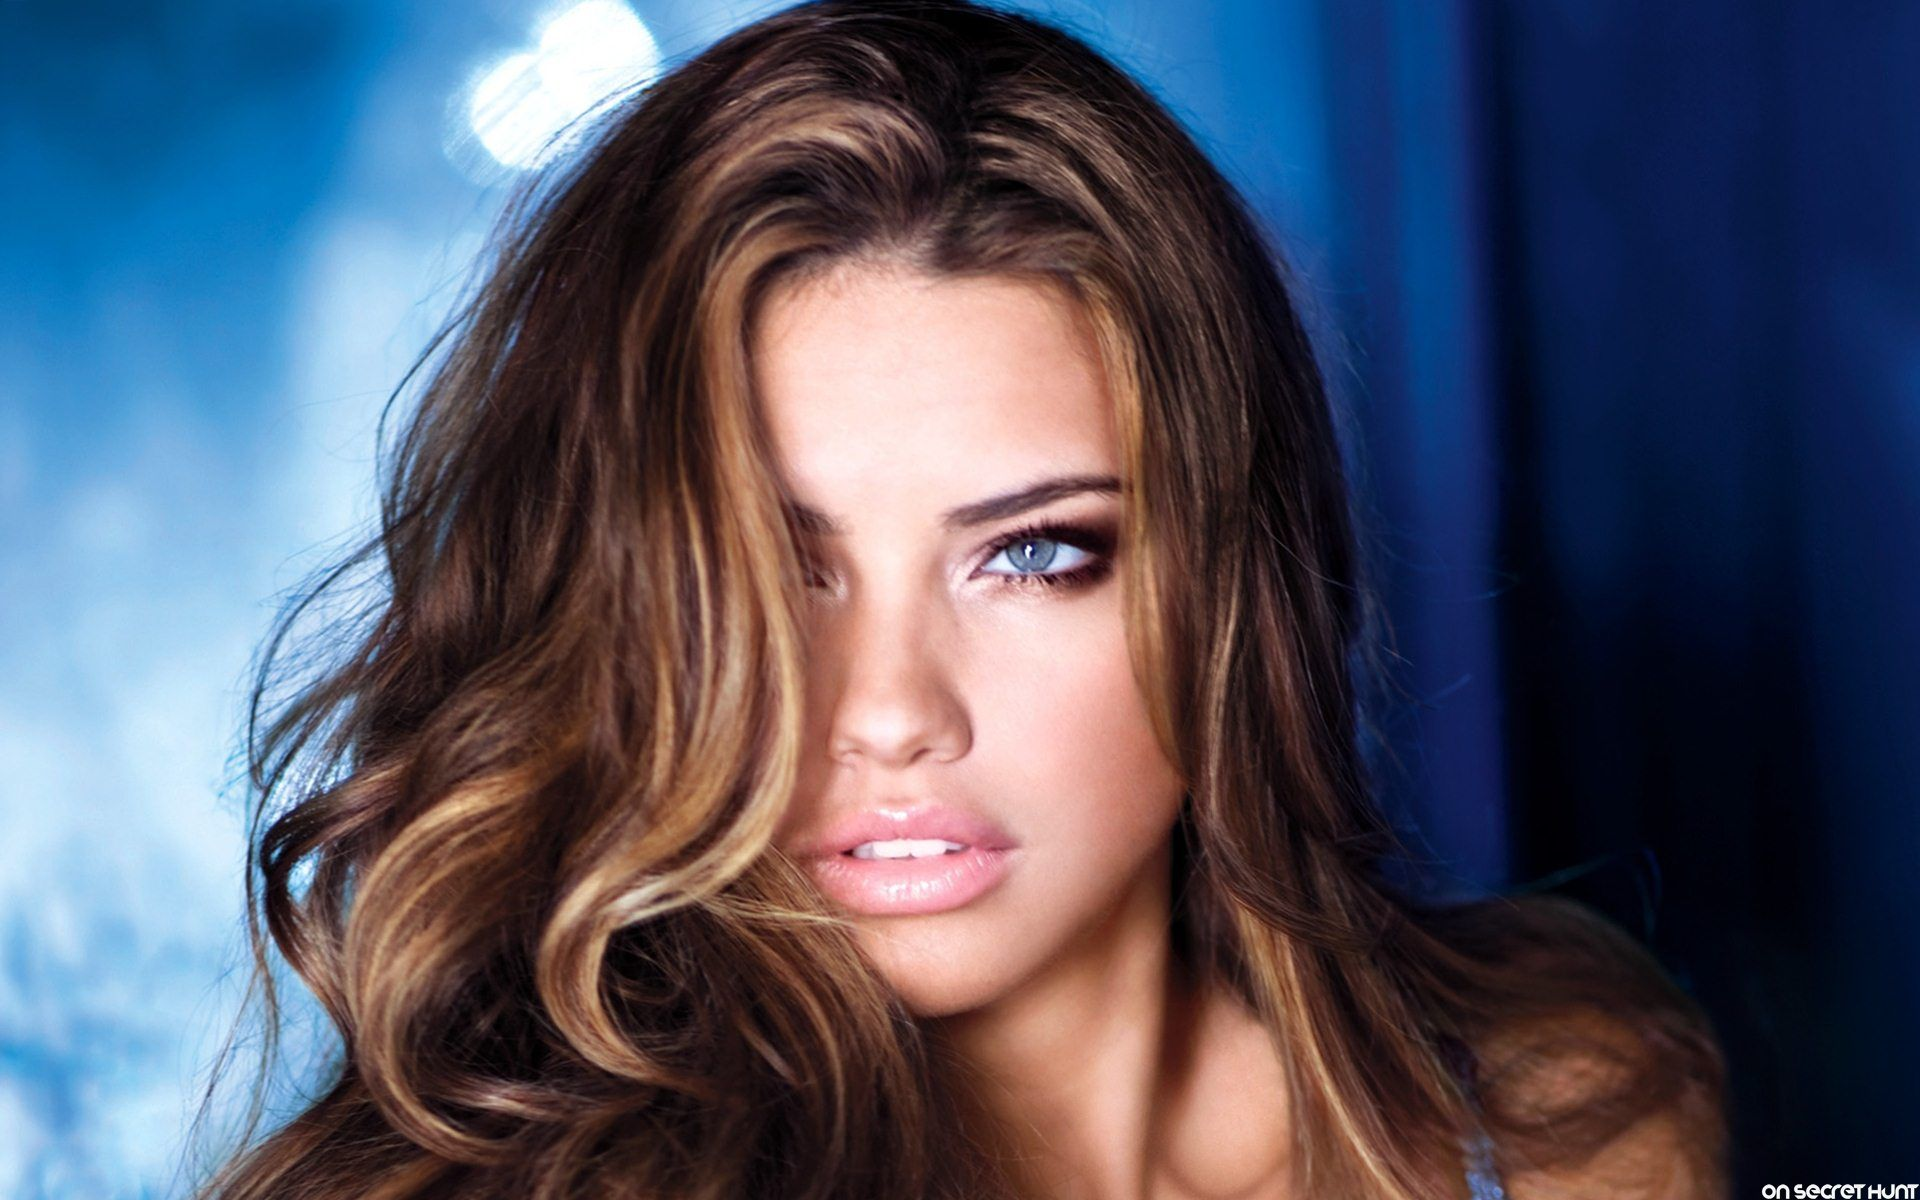 Adriana Lima 4 Cool Wallpapers HD